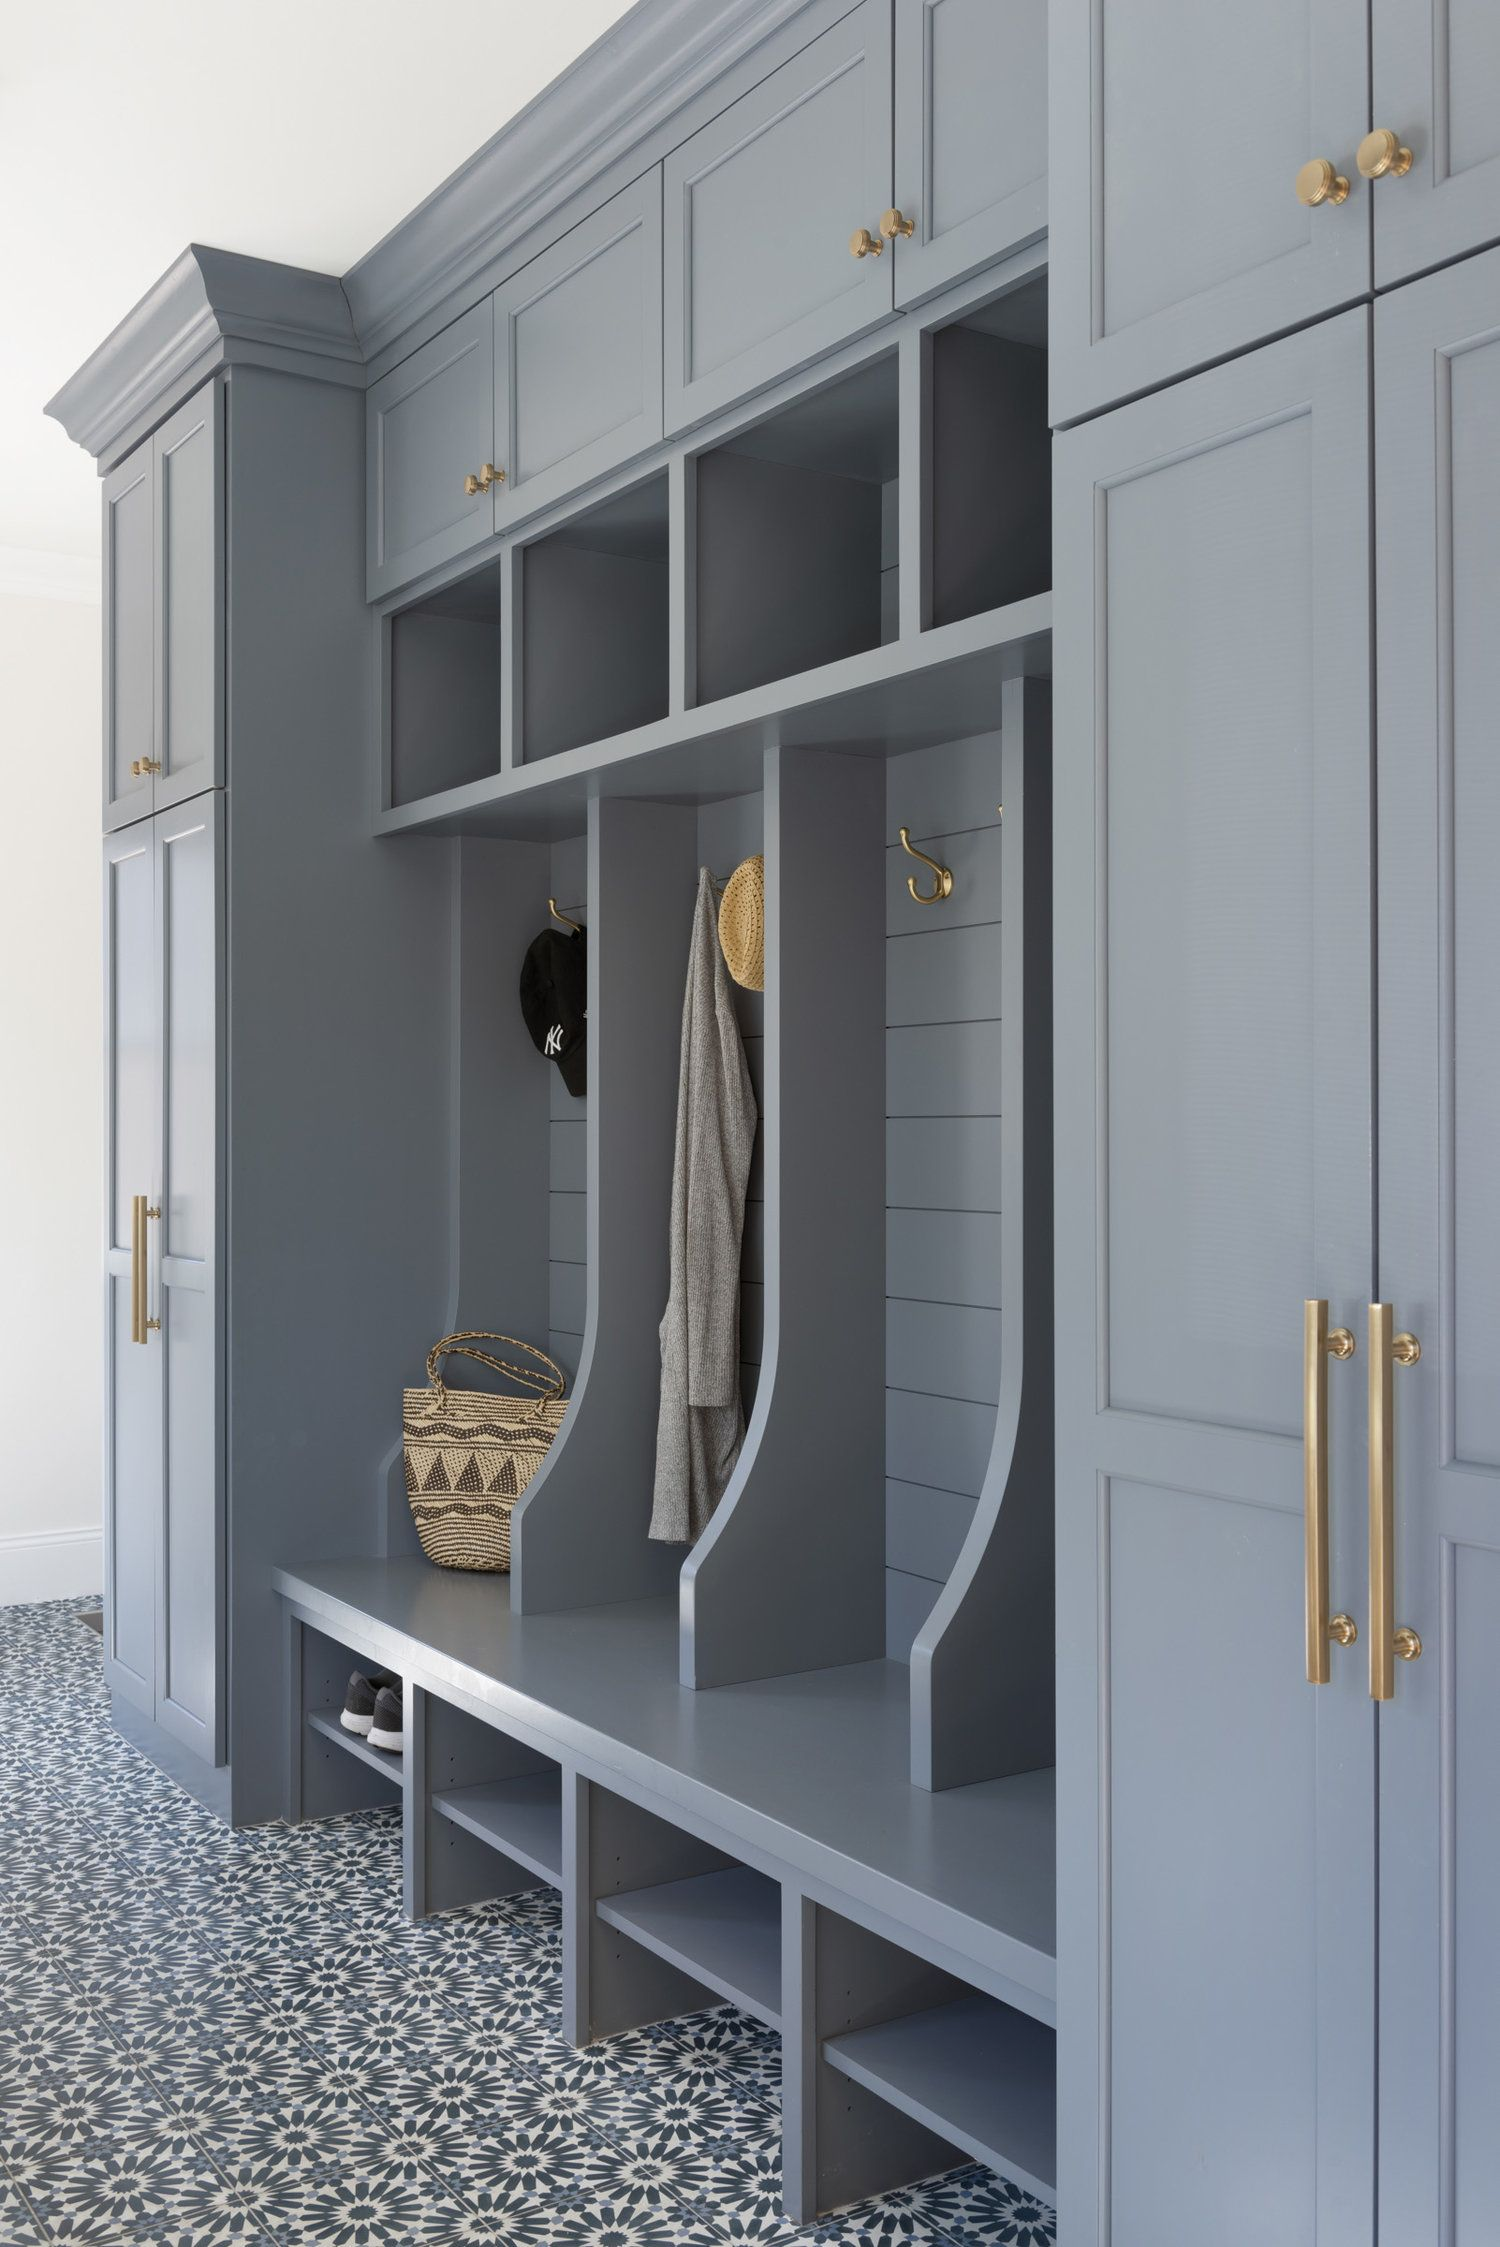 Slate Blue Mudroom Cubbies With Shiplap In The Back Of The Cubbies